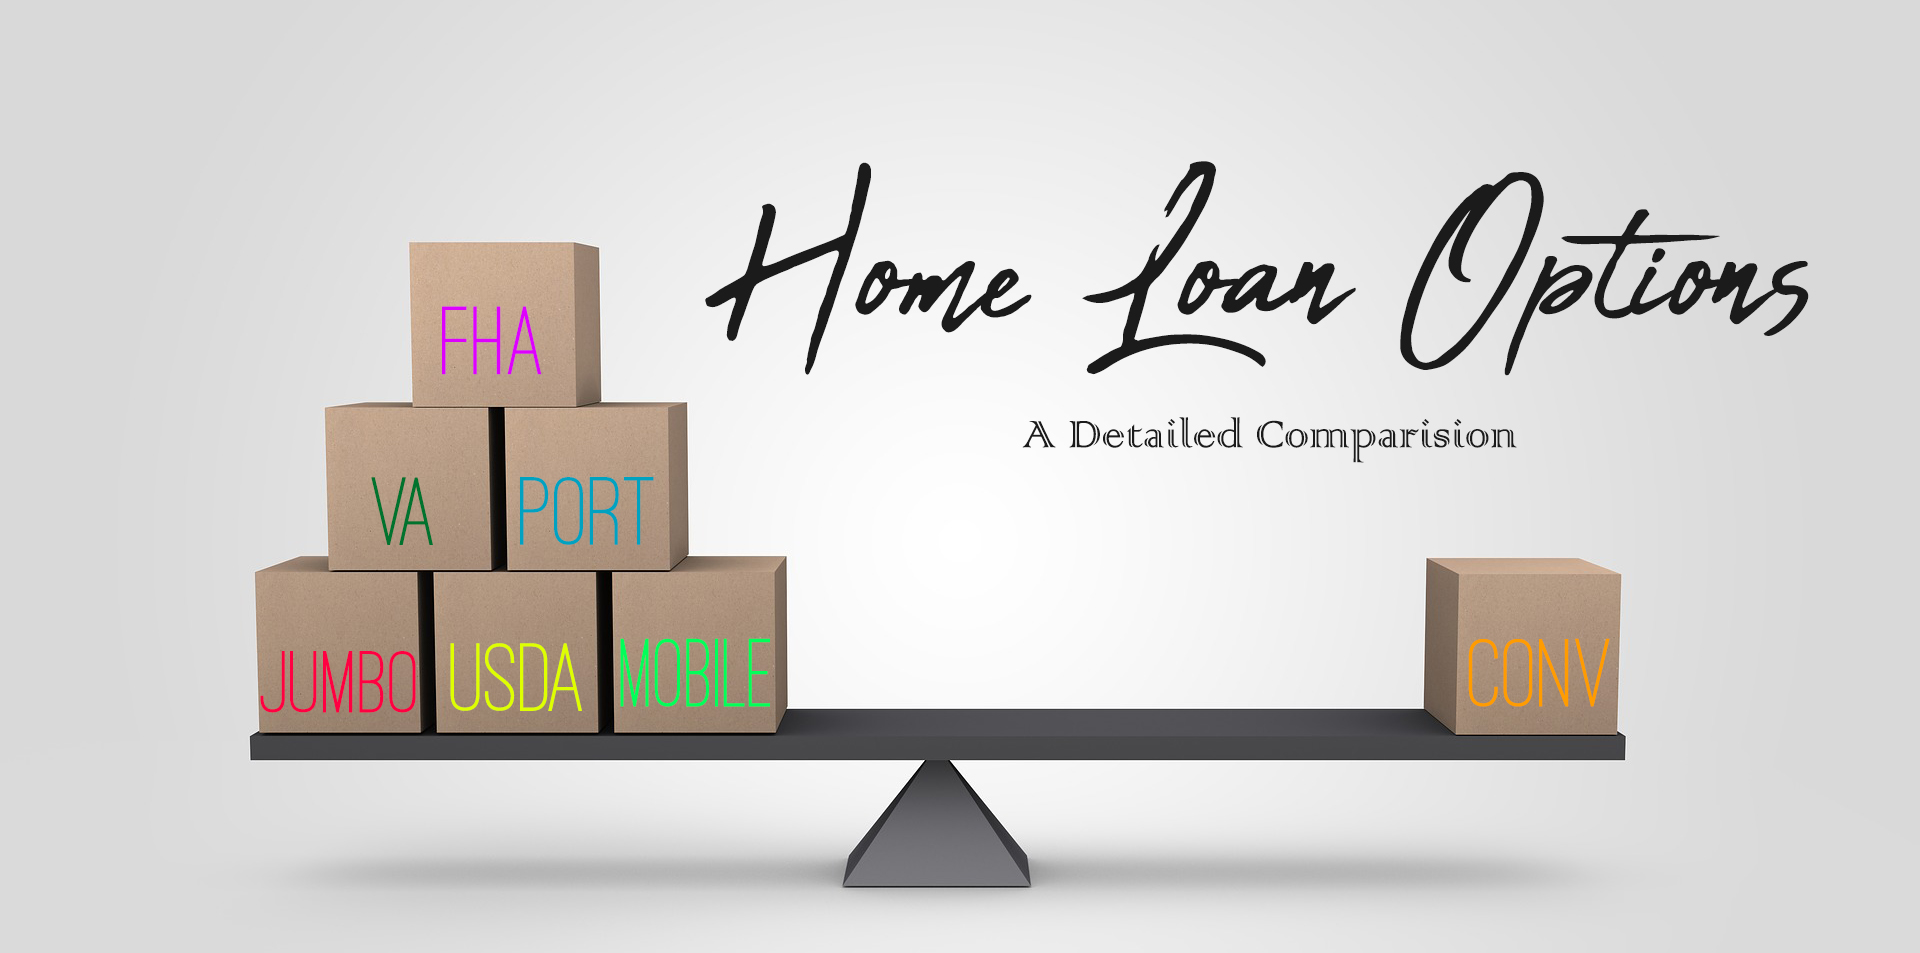 Usda Home Loans >> Conventional Loan Vs Fha Loan Vs Va Loan Vs Usda Home Loans